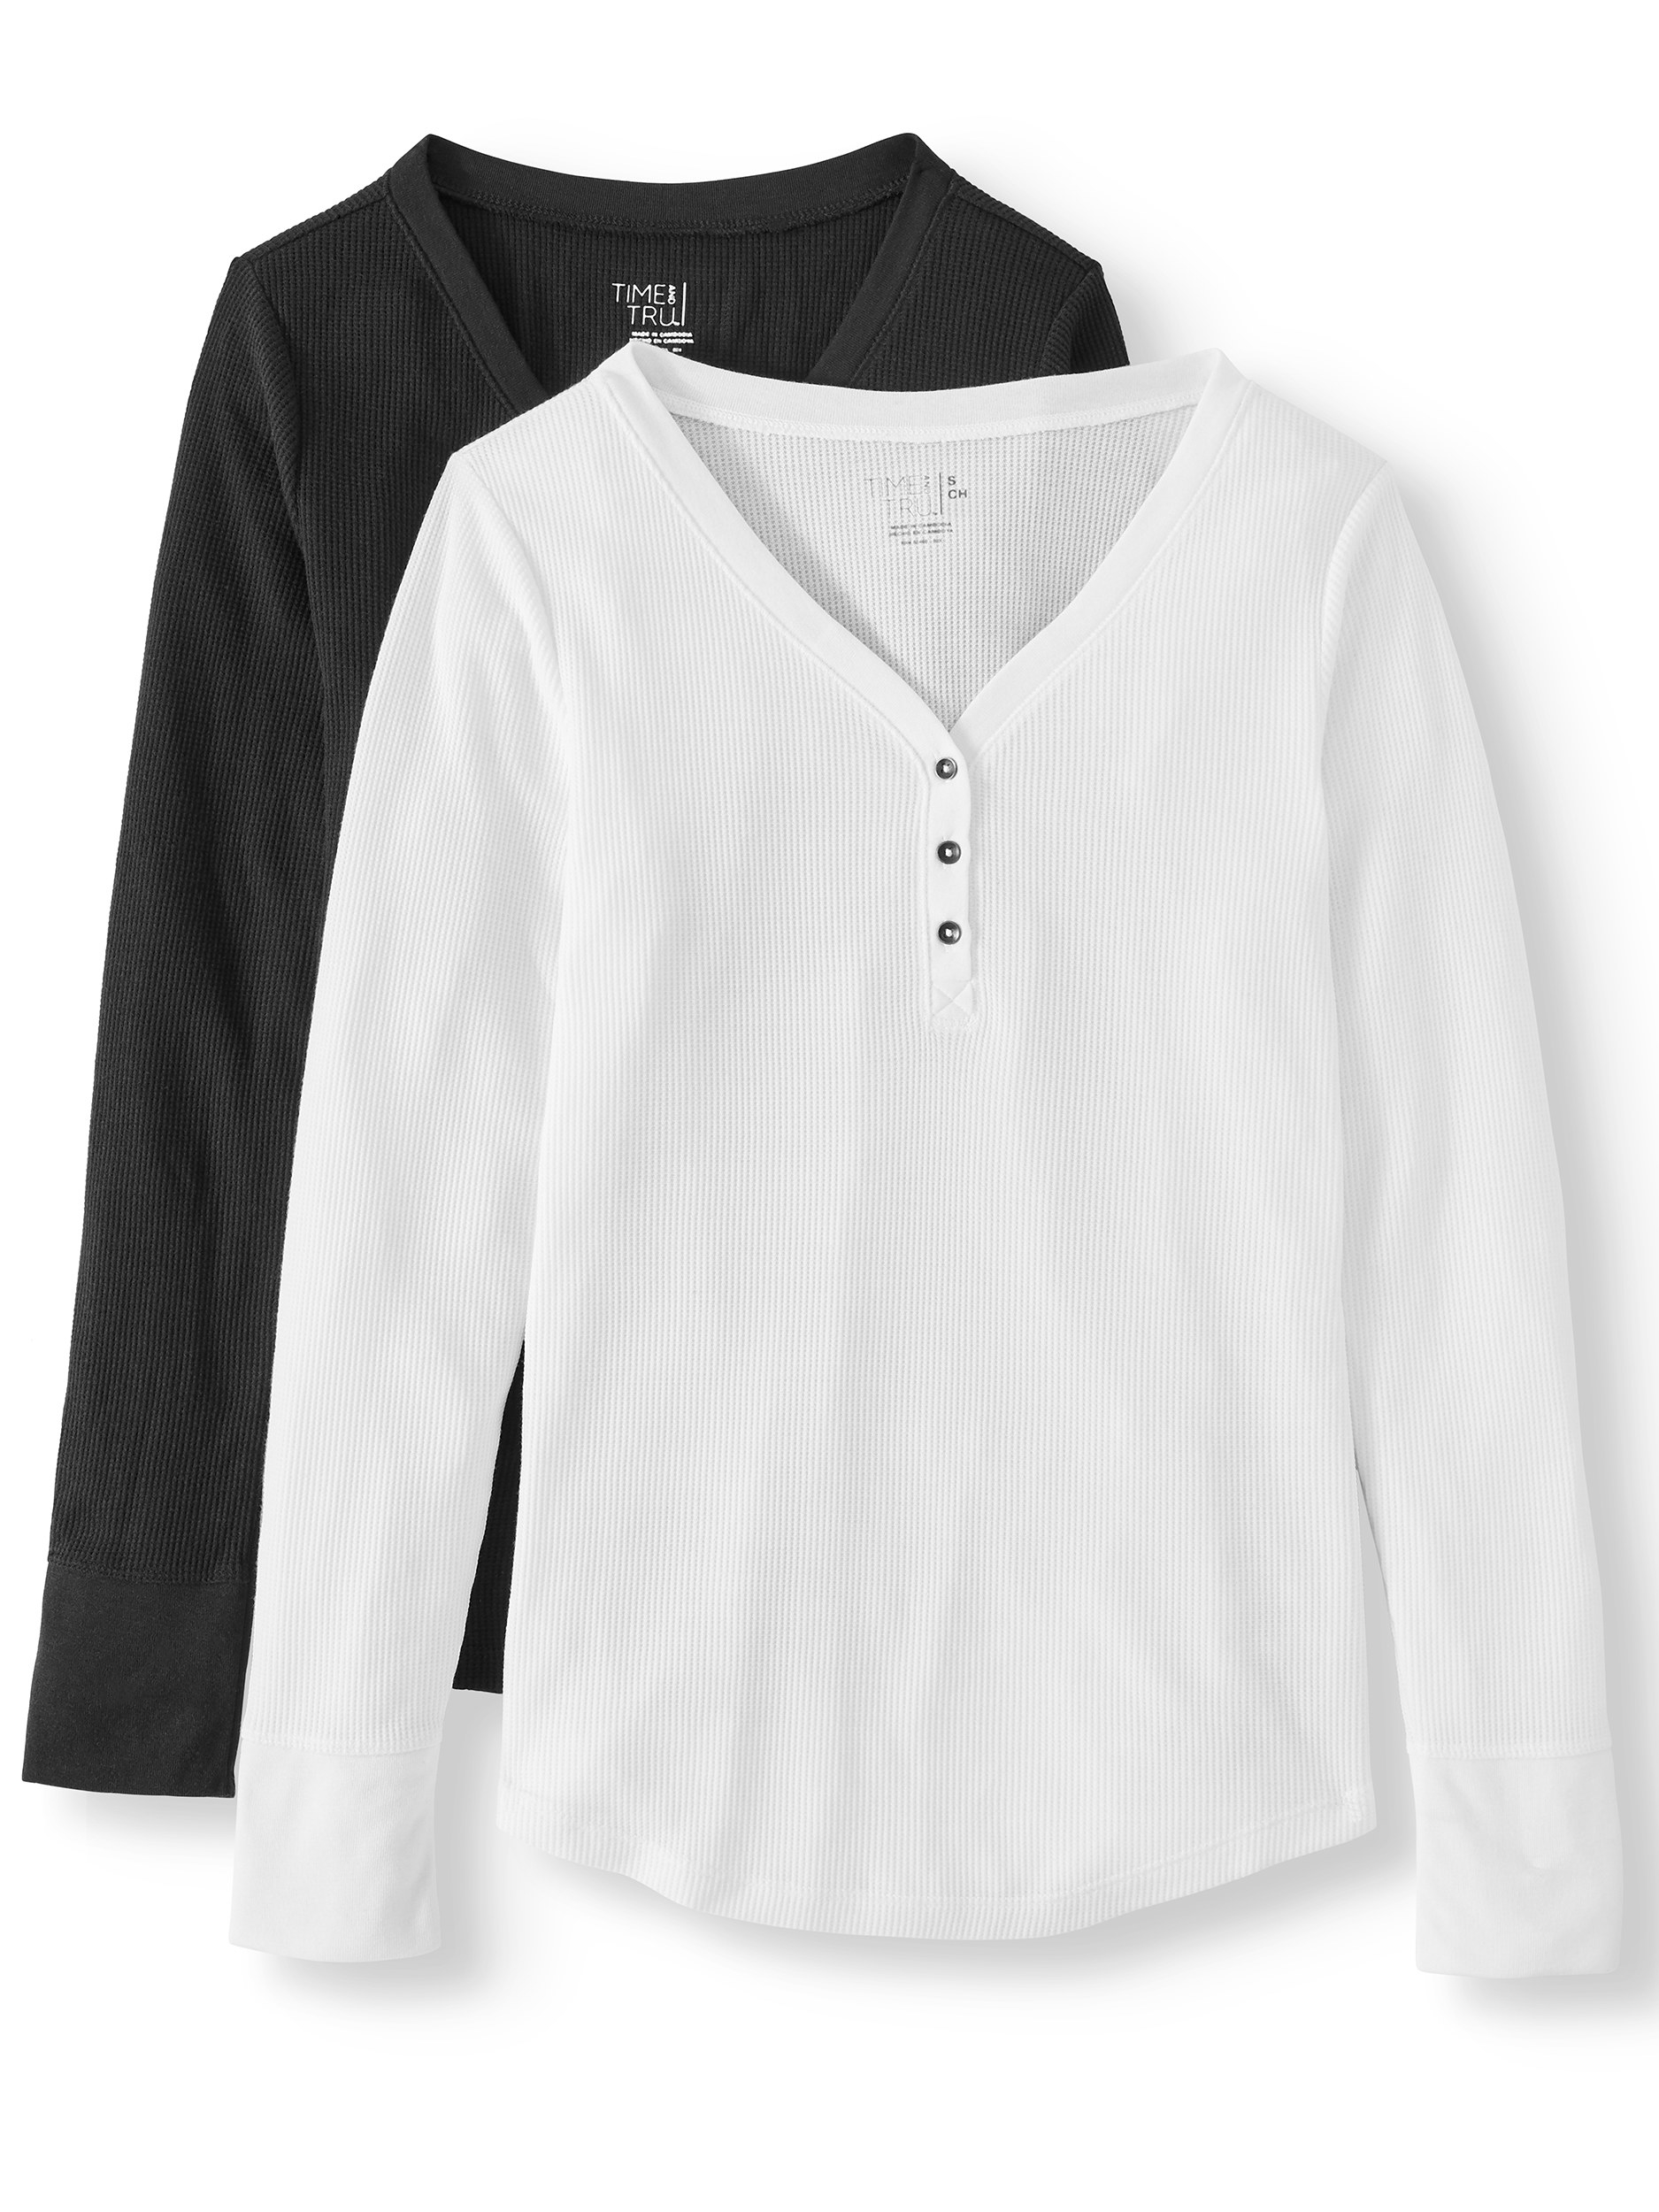 The white and black shirts